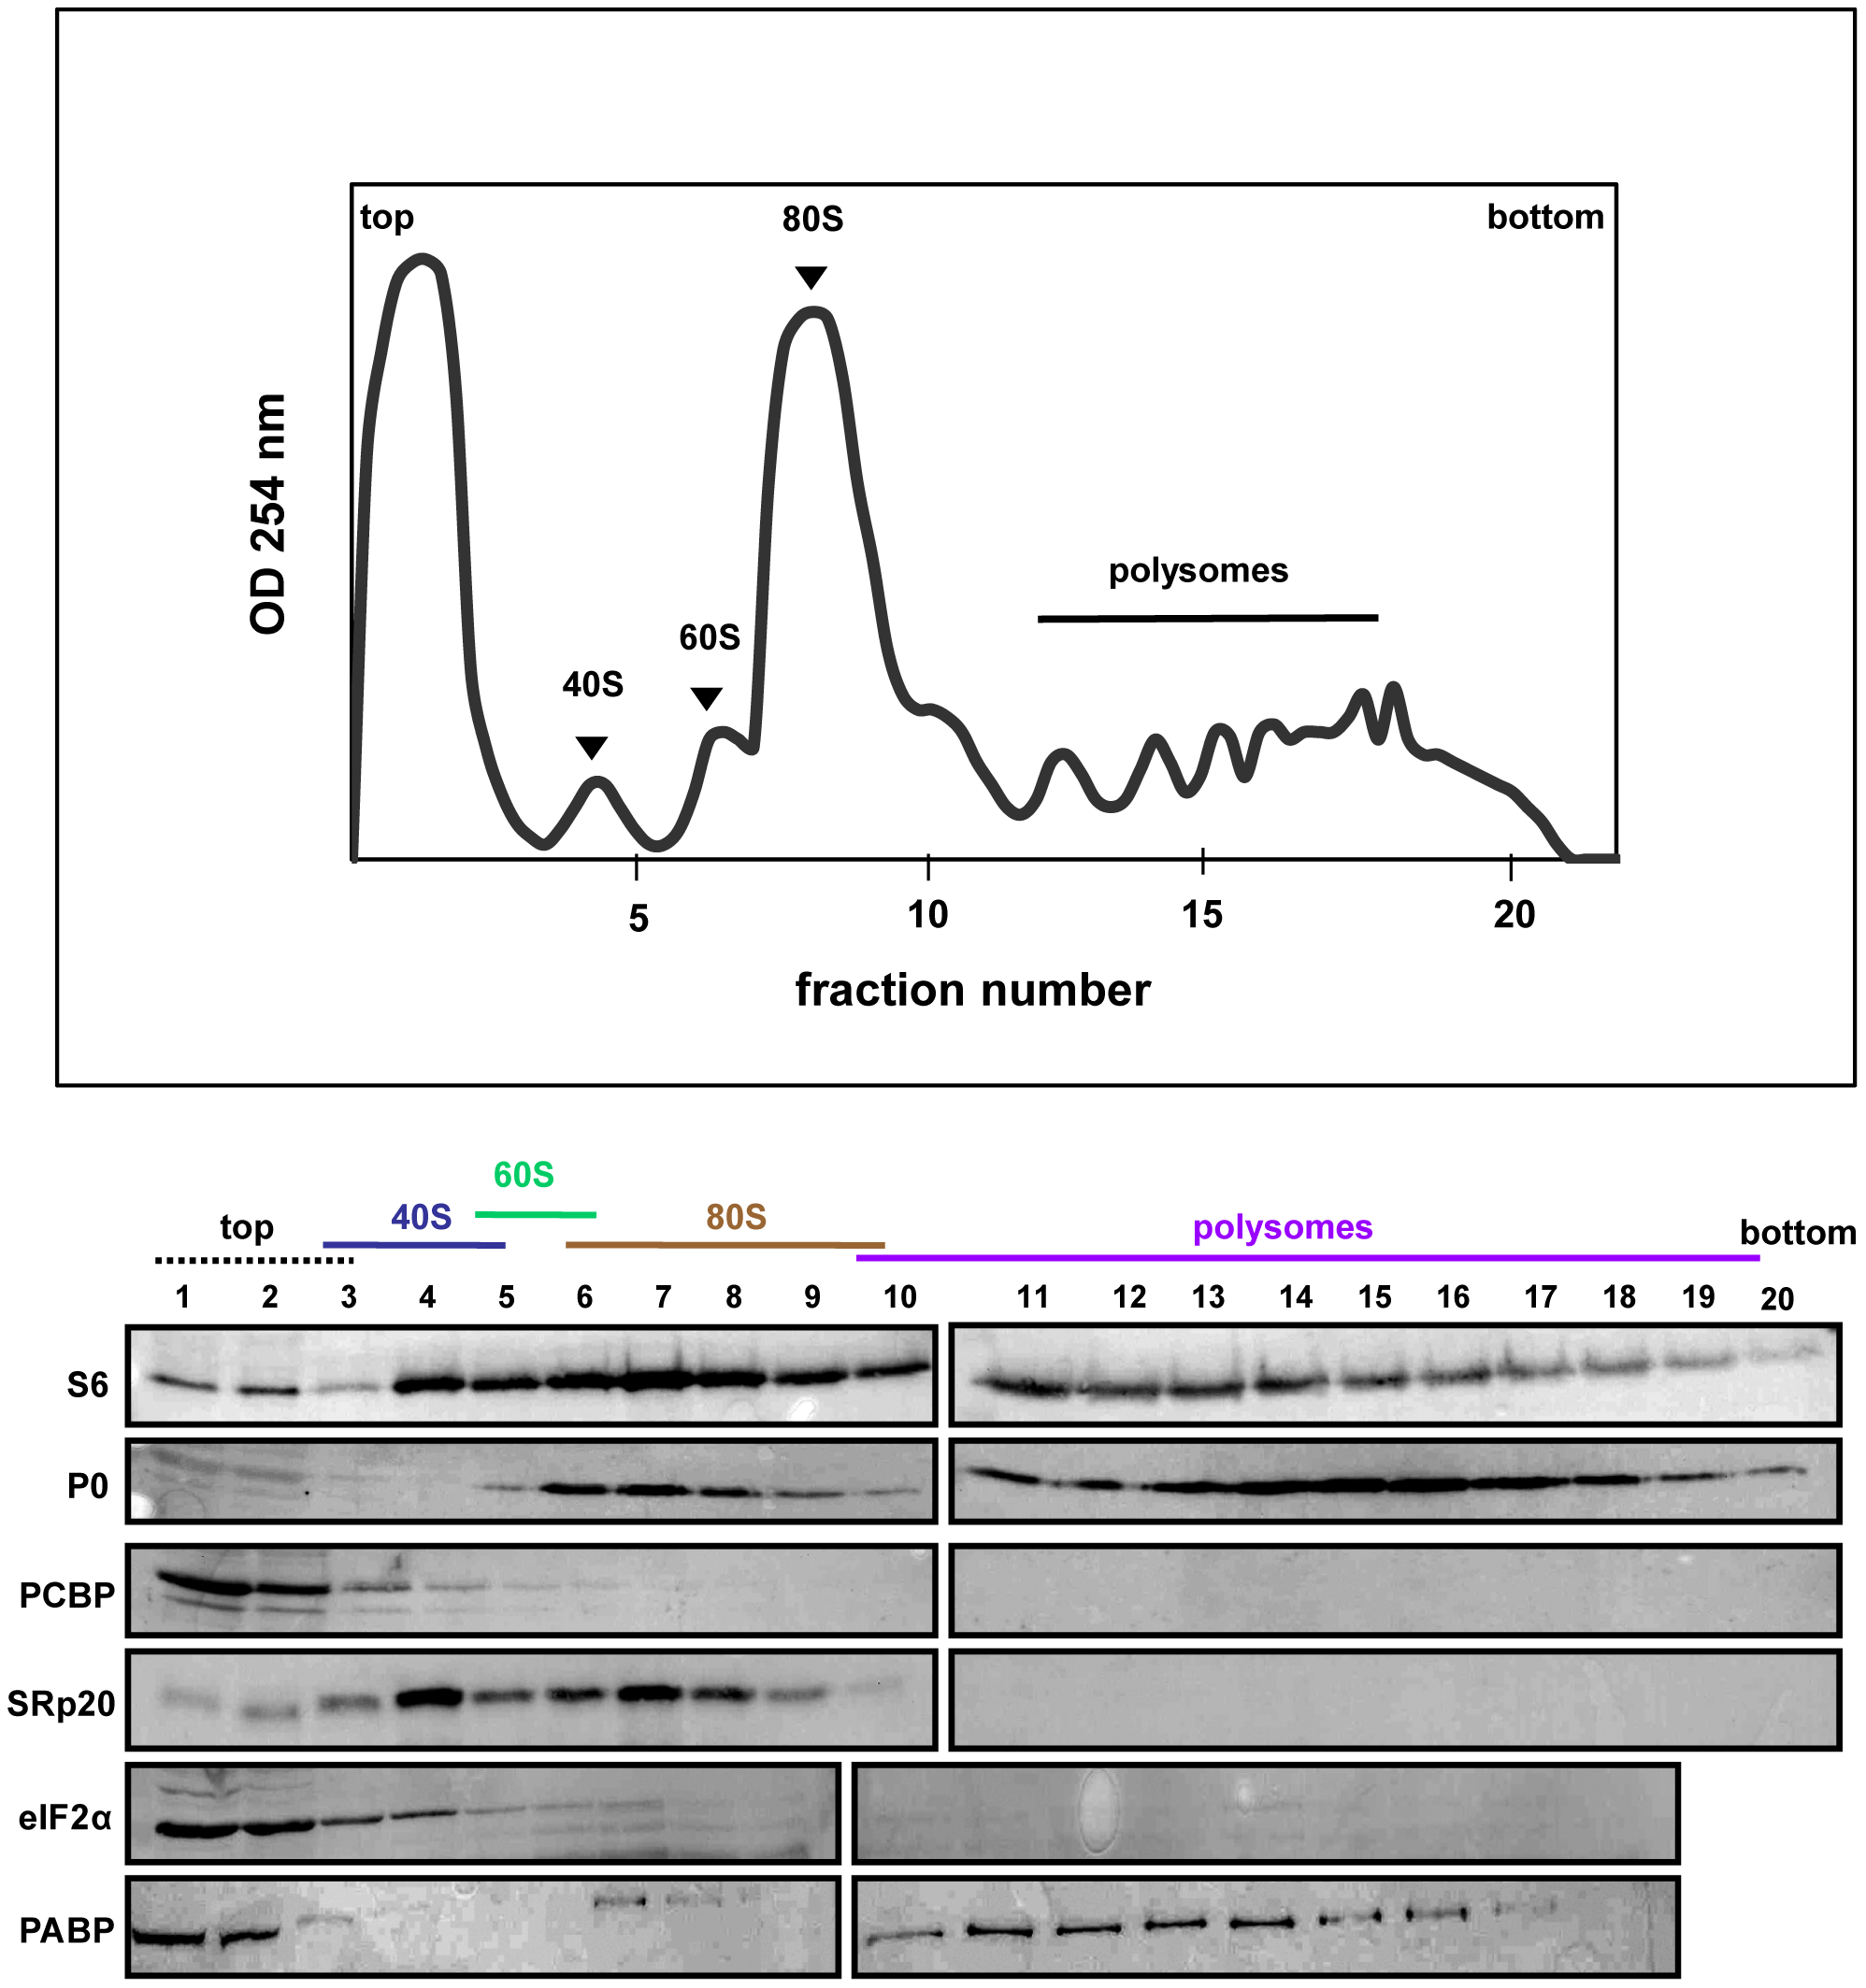 SRp20 and PCBP2 co-sedimentation with 40S ribosomal subunits in mock-infected cells.